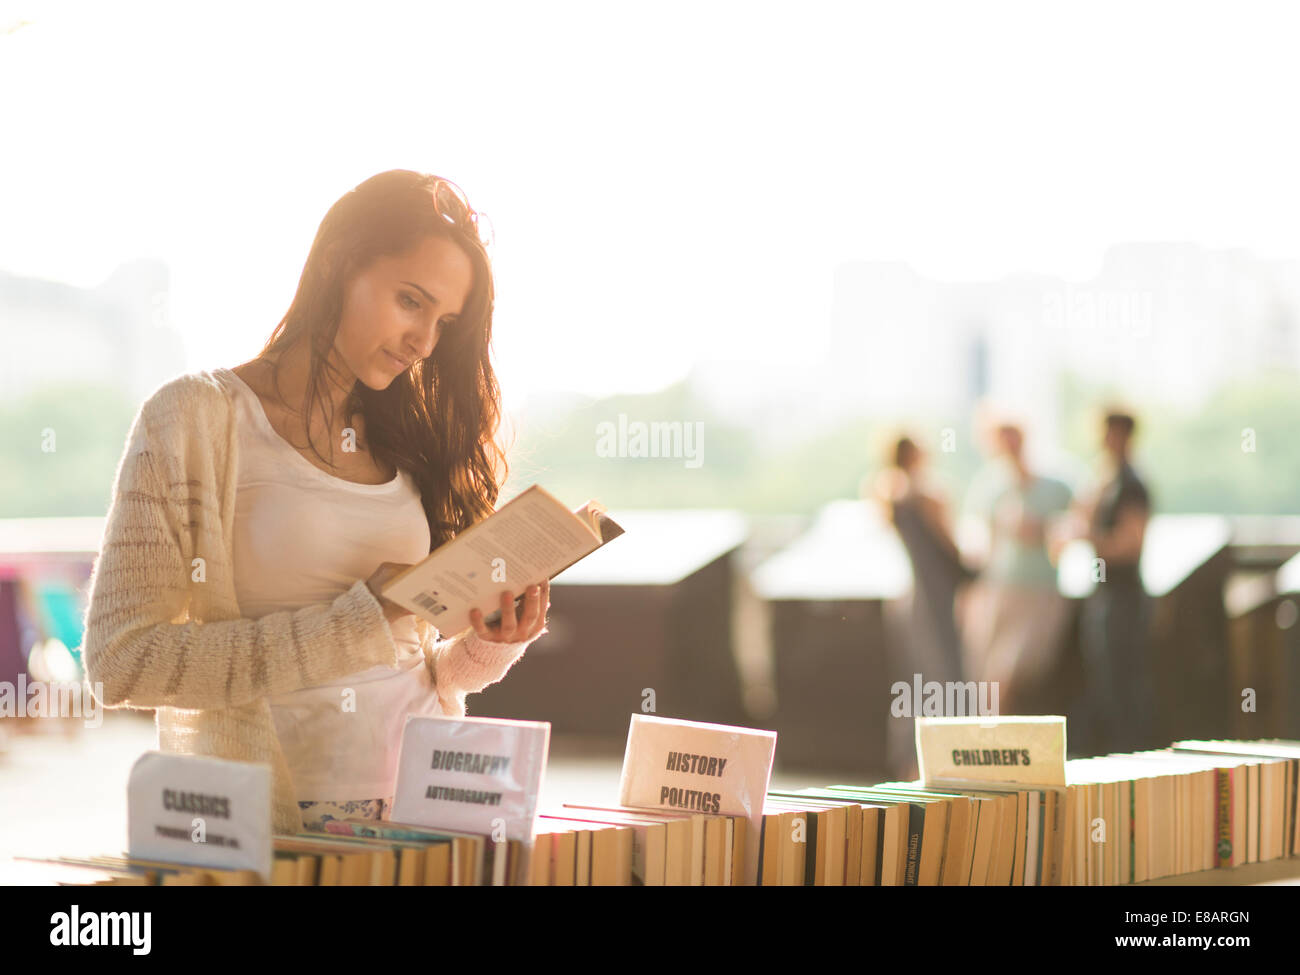 Young woman at second hand book stall - Stock Image